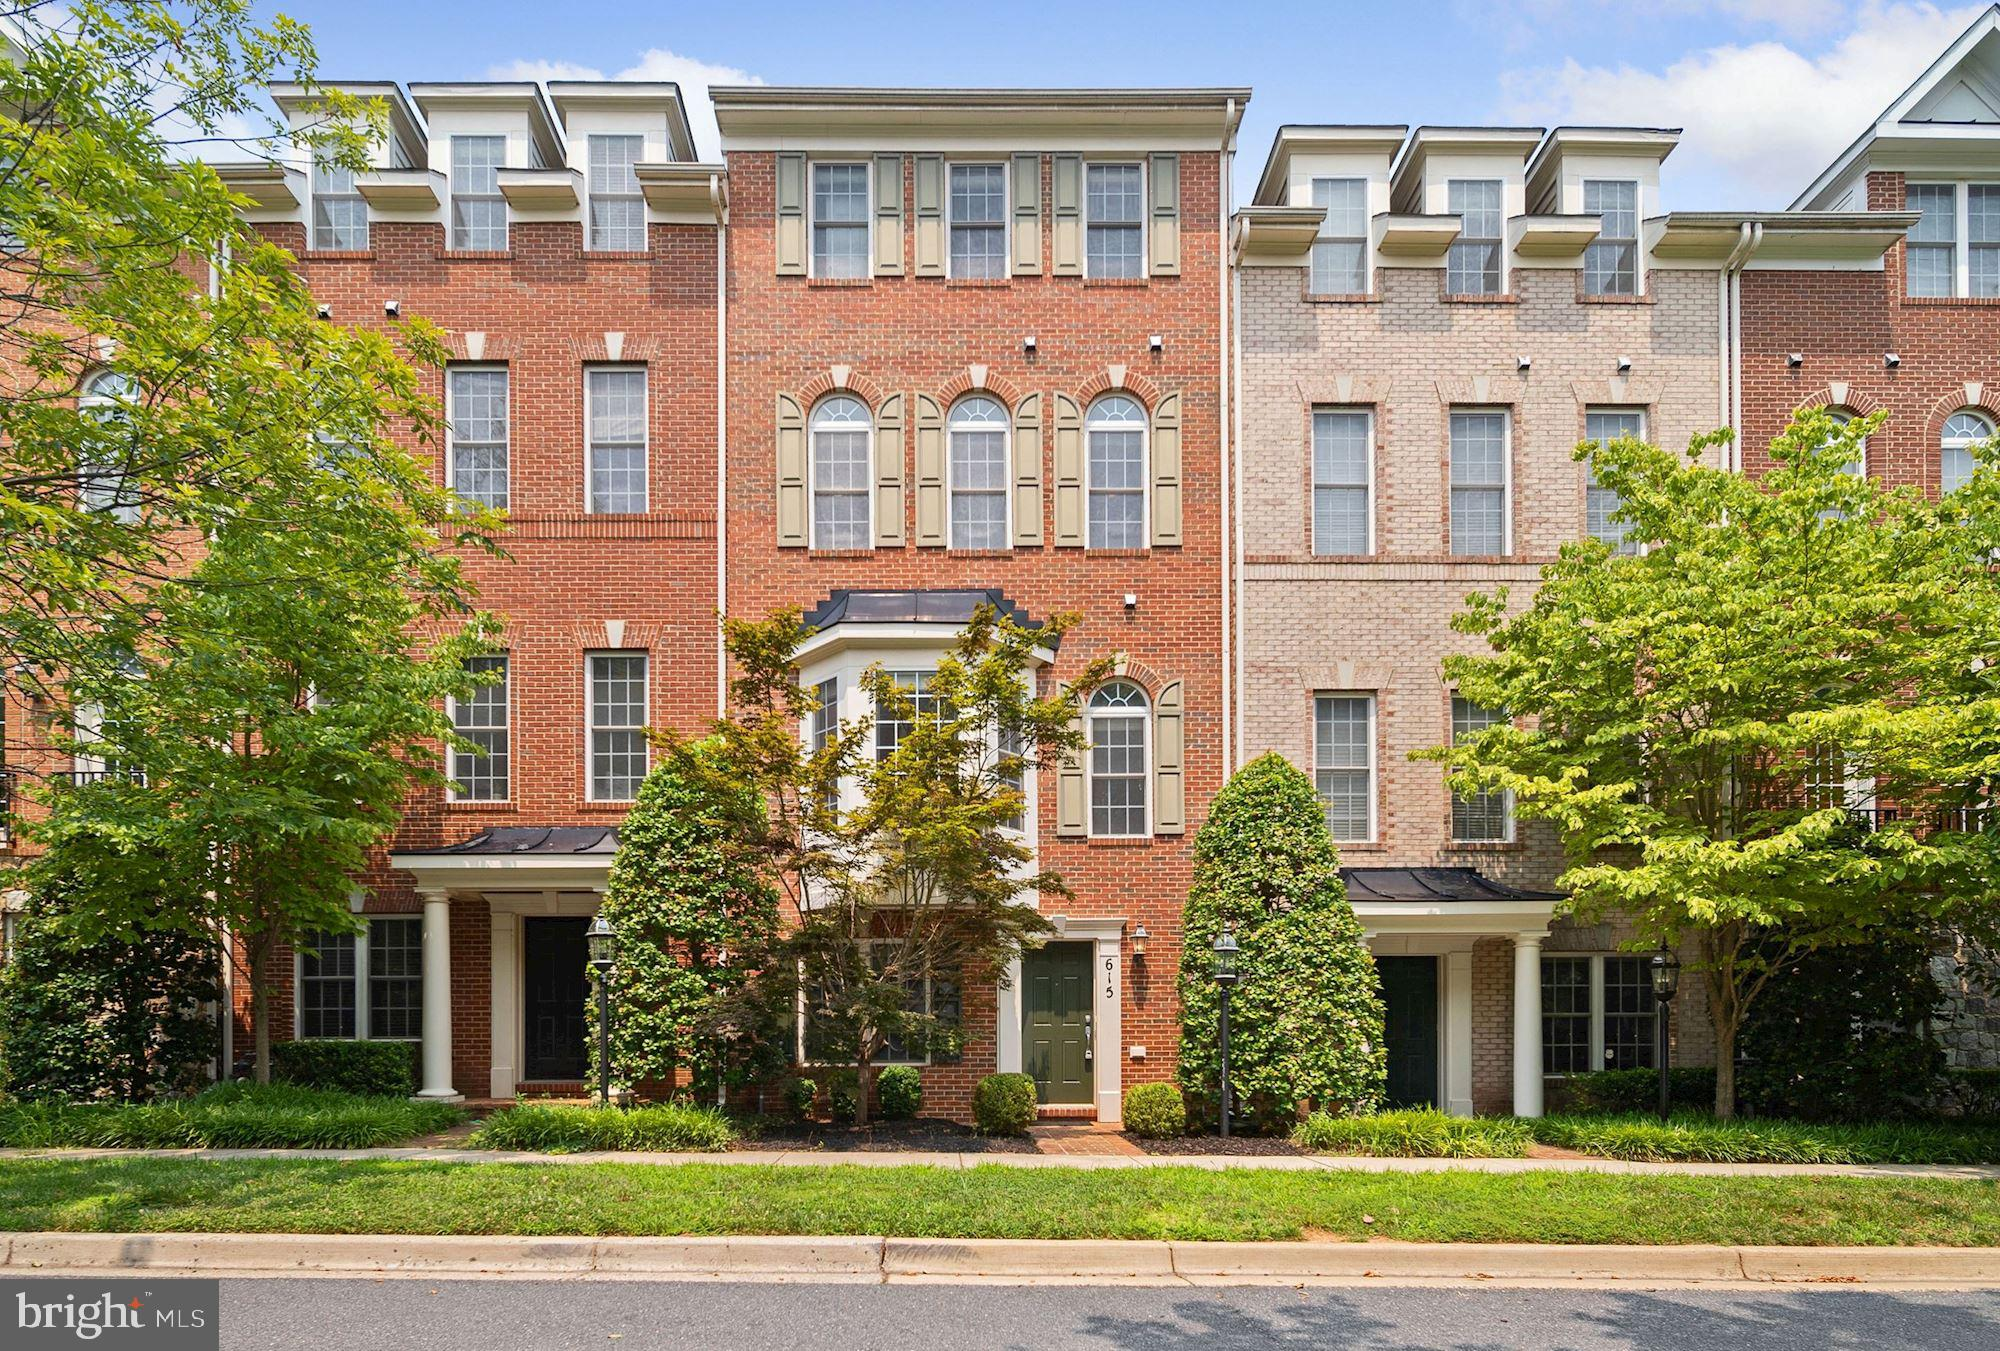 615 Eden Place is an elegant and spacious 4-level townhome on a quiet tree-lined street in lovely Hi